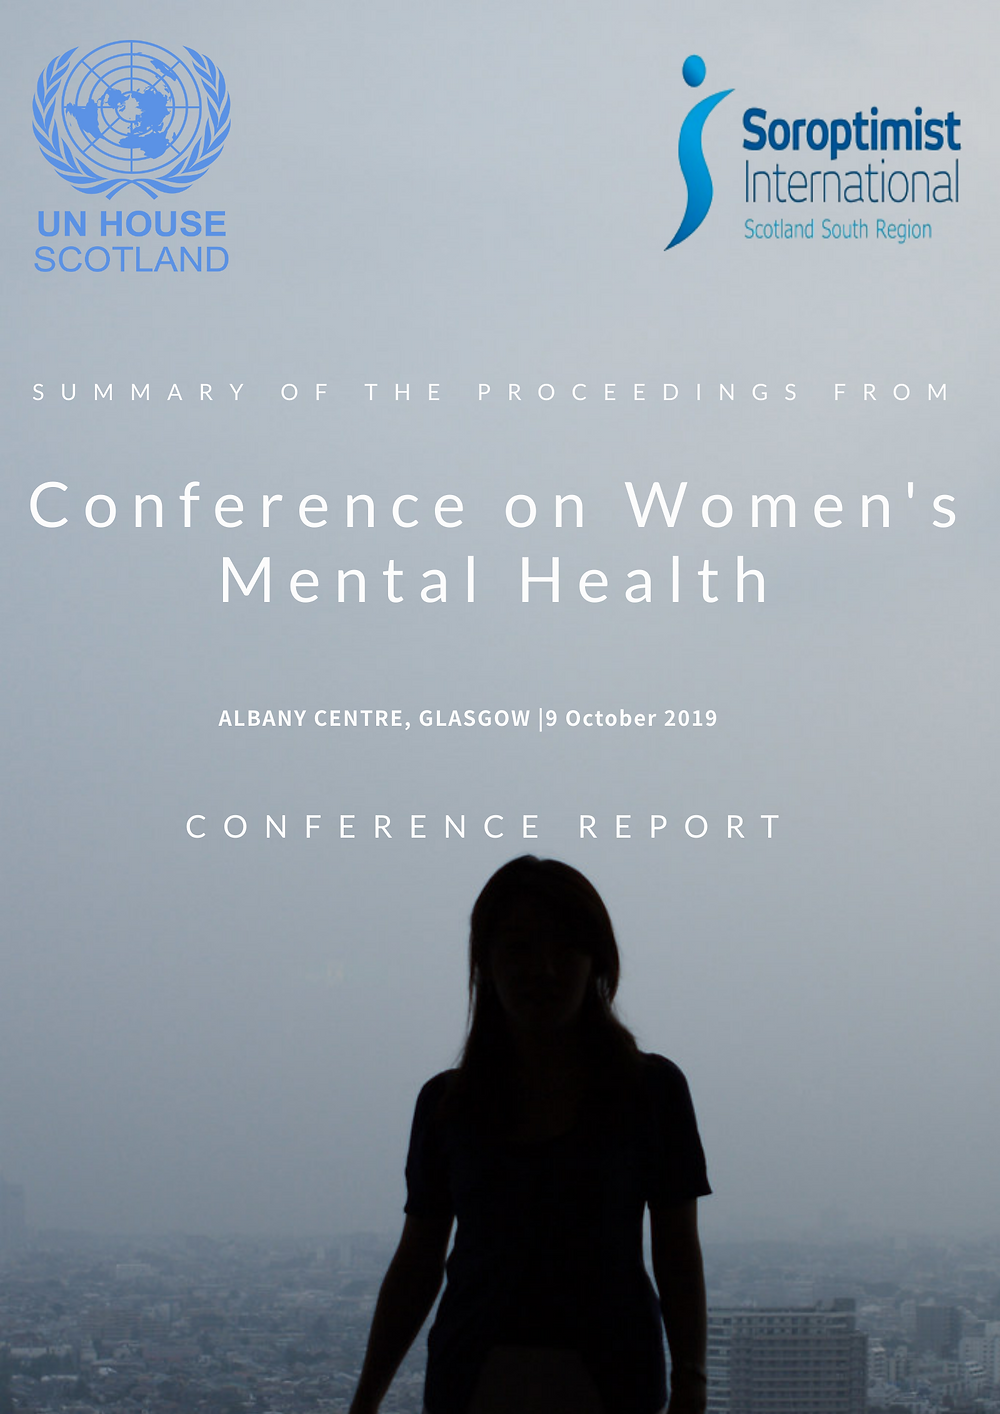 Report on the Conference for Women's Mental Health